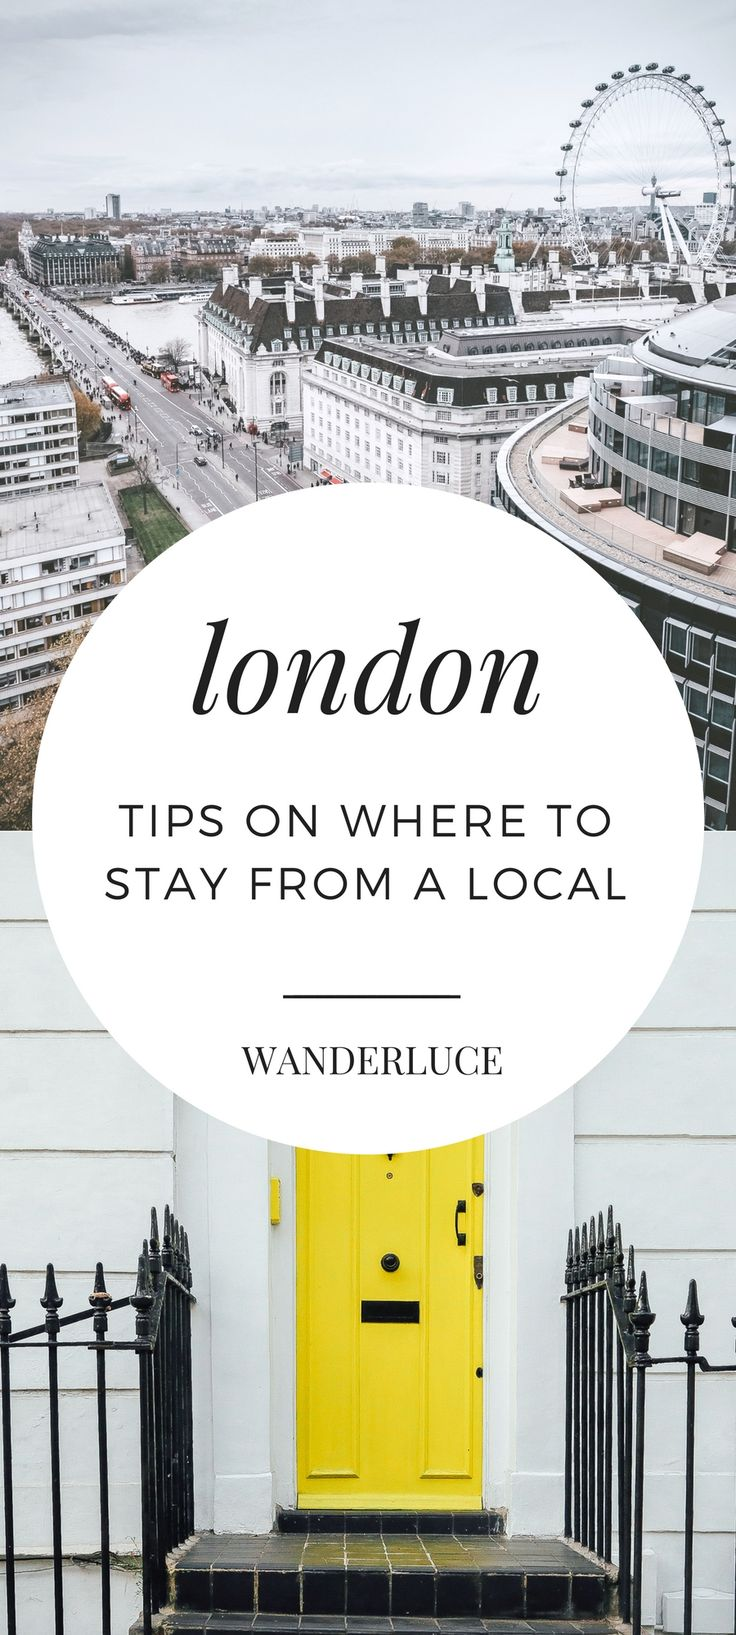 Wondering where to stay in London, England? Check out this little neighborhood guide, written by a local.